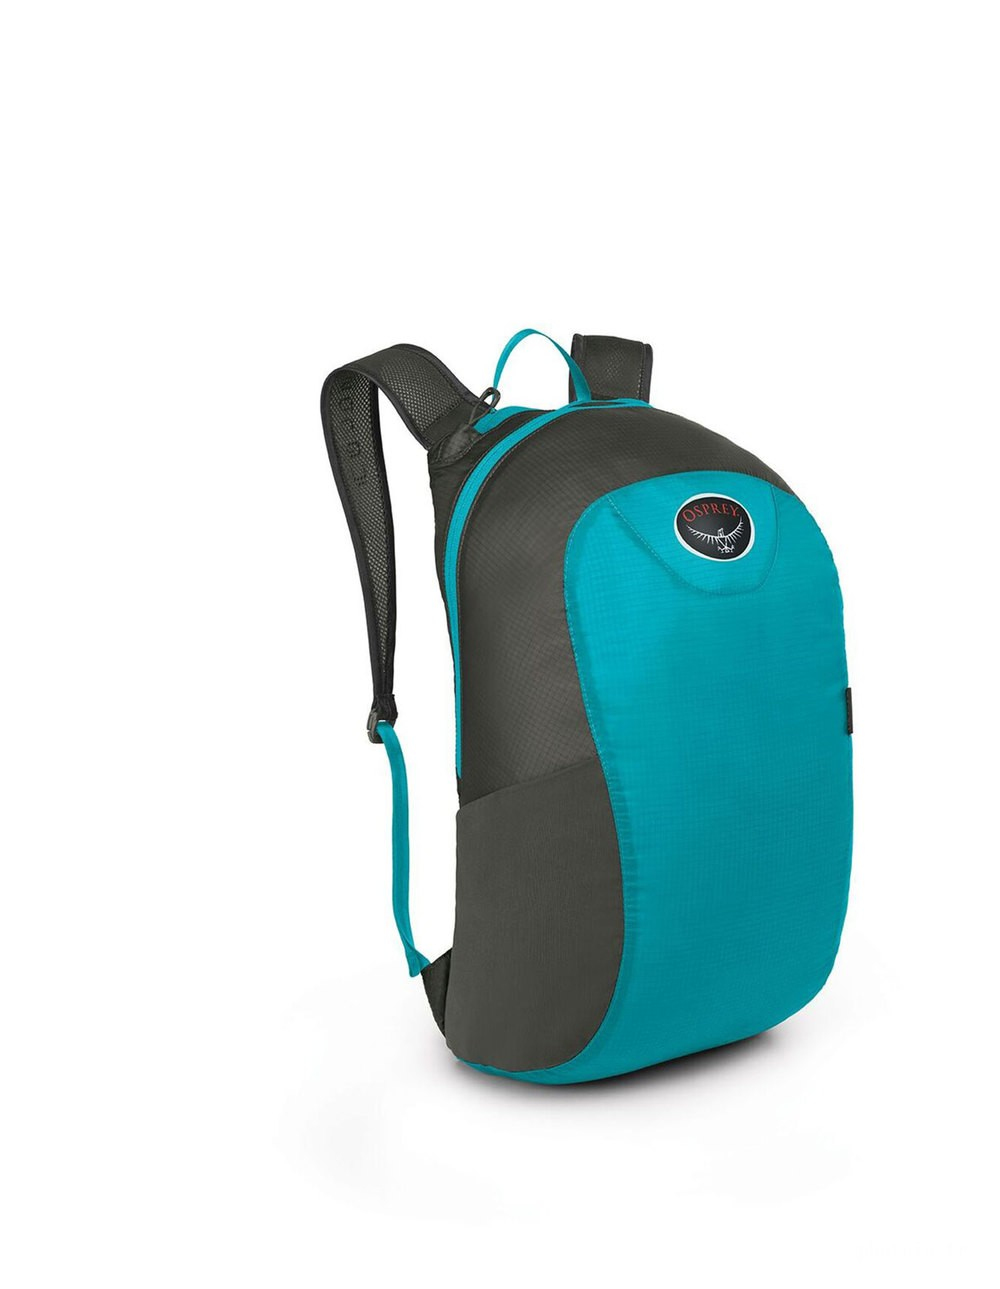 Osprey Sac à dos ultra léger - Ultralight Stuff Pack Tropic Teal